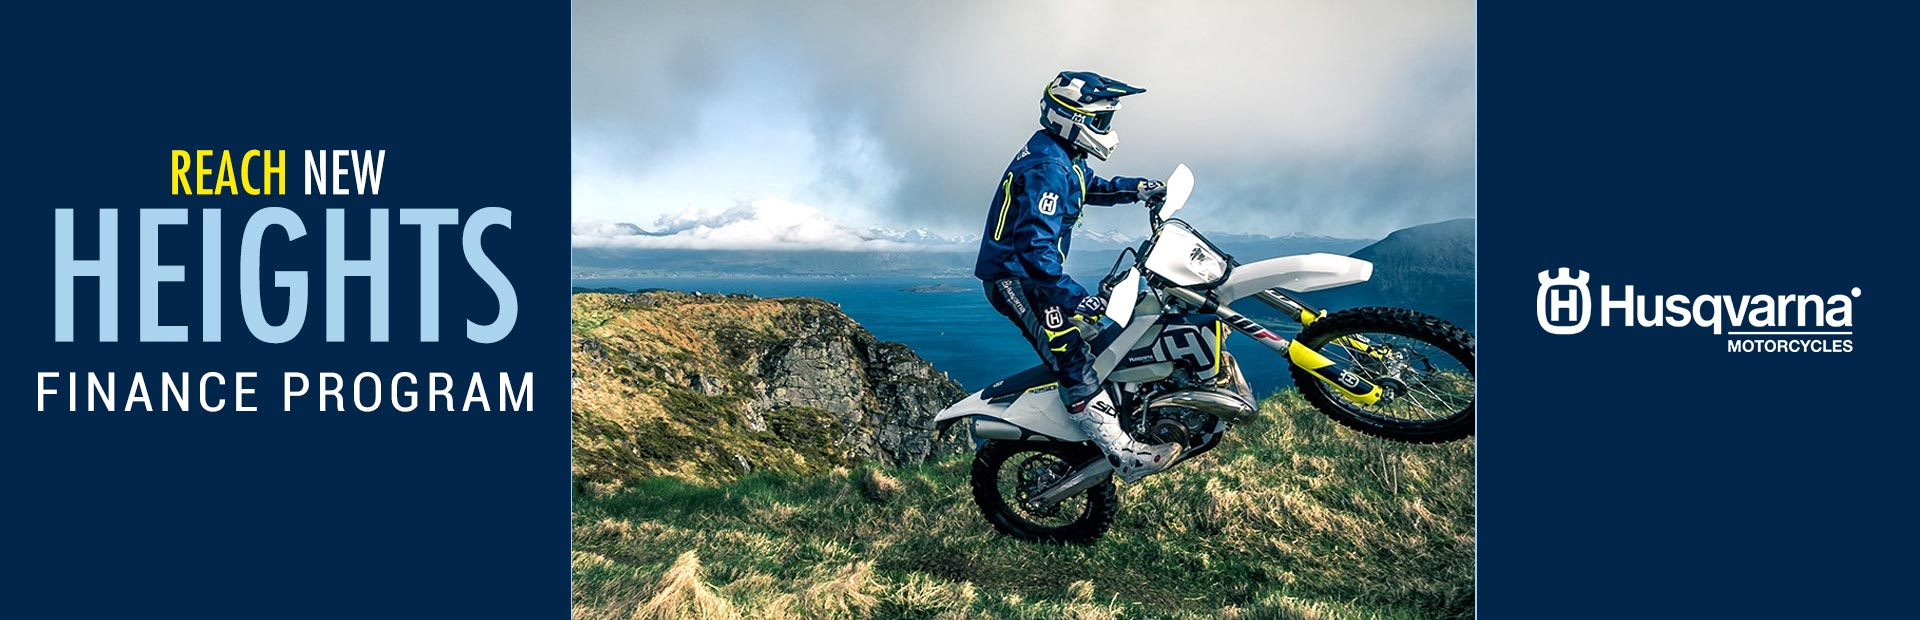 Husqvarna Motorcycles: Reach New Heights – Retail Finance Program